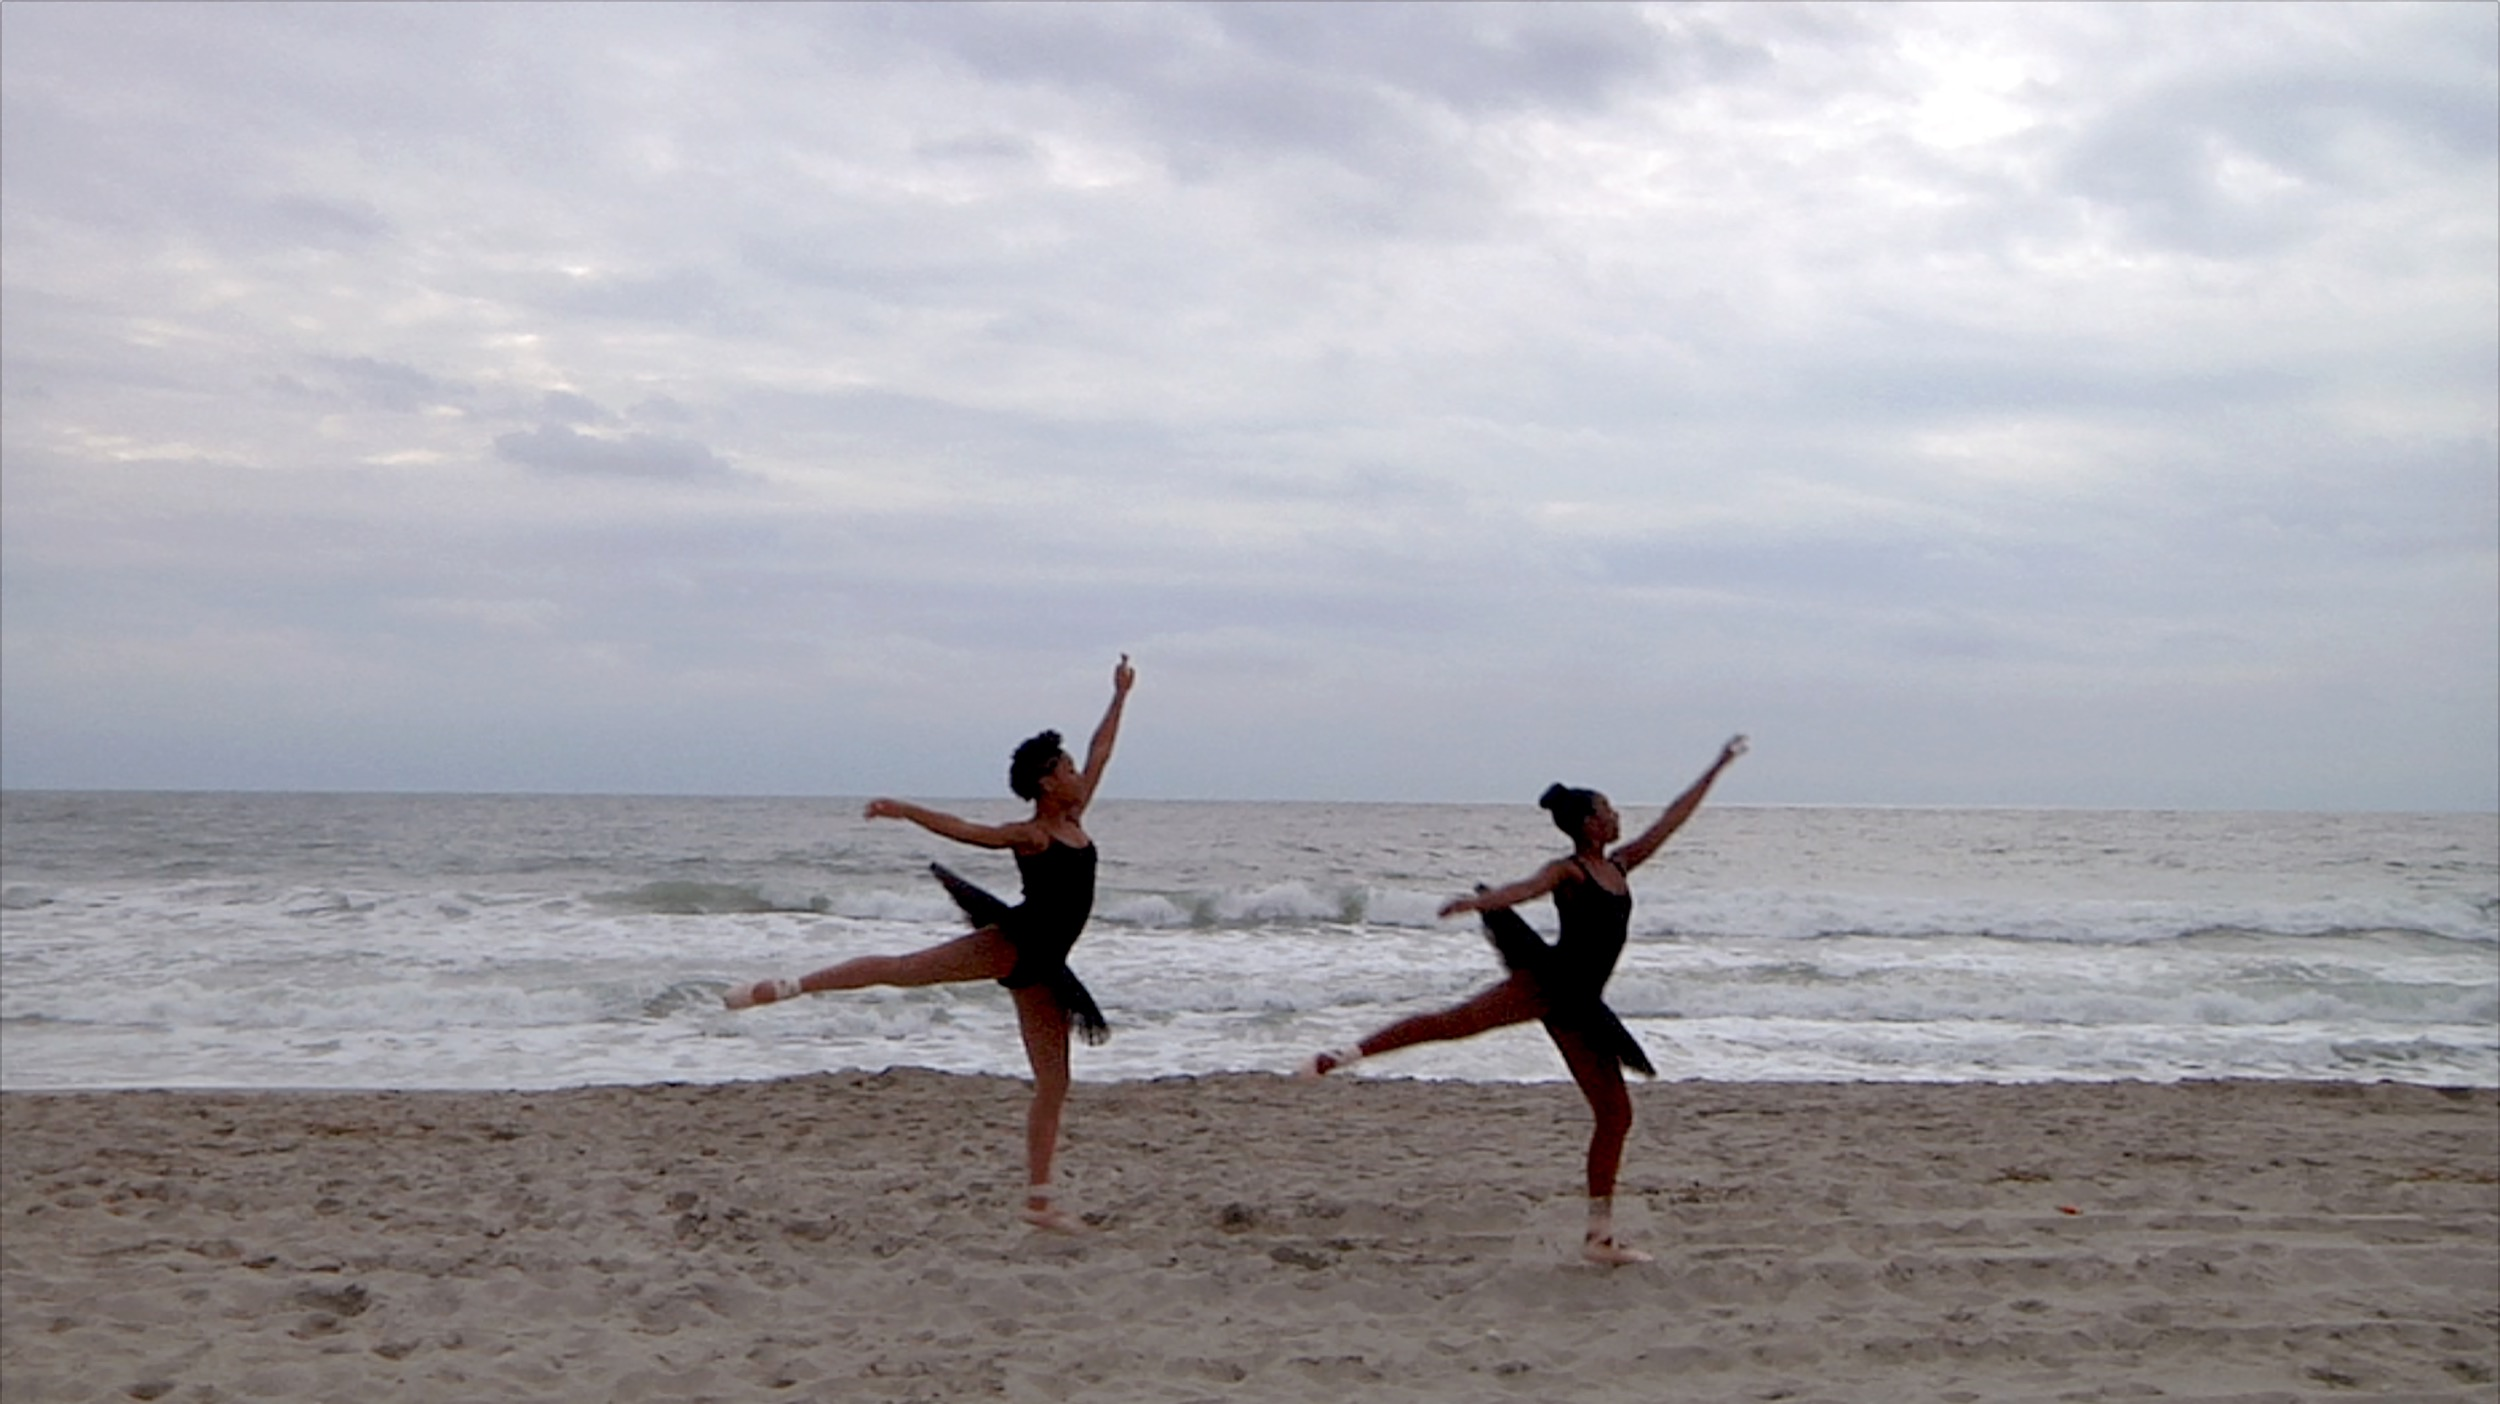 Raven Joseph and Tatianna Burchette, high school students in the Rockaways, dance on the beach hit by Hurricane Sandy 1000 days after the storm.